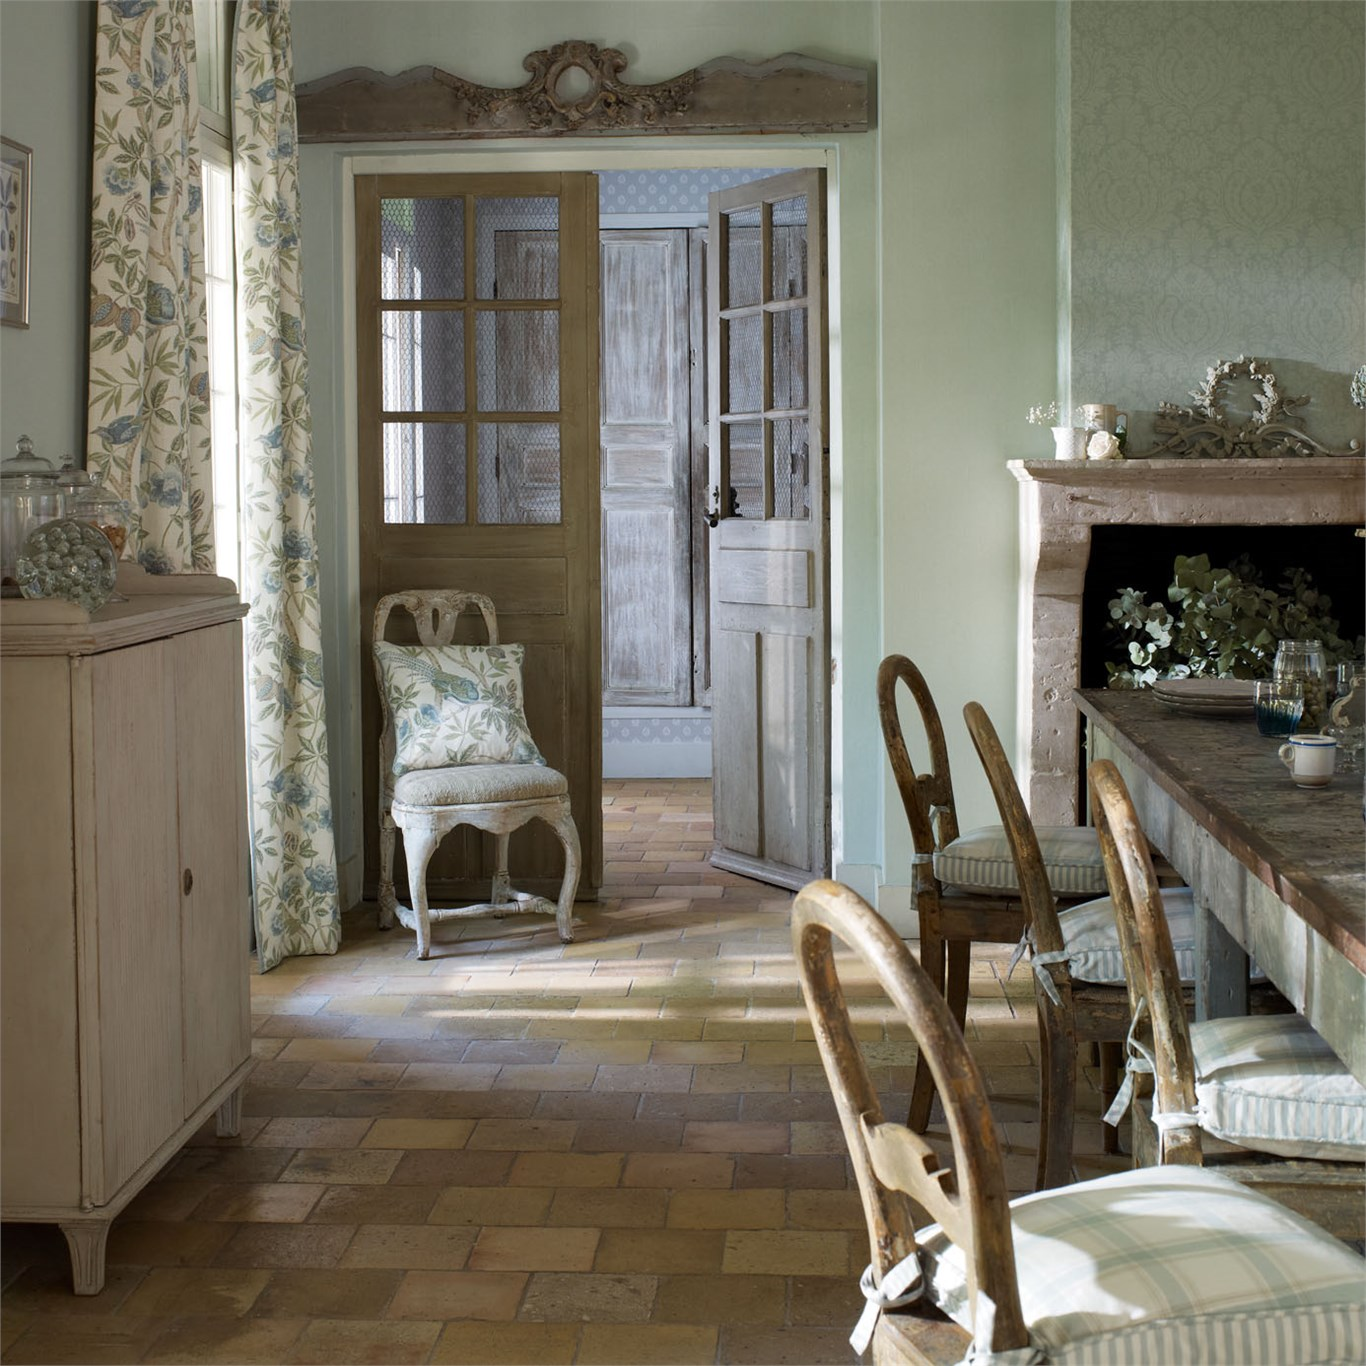 How to achieve a shabby look